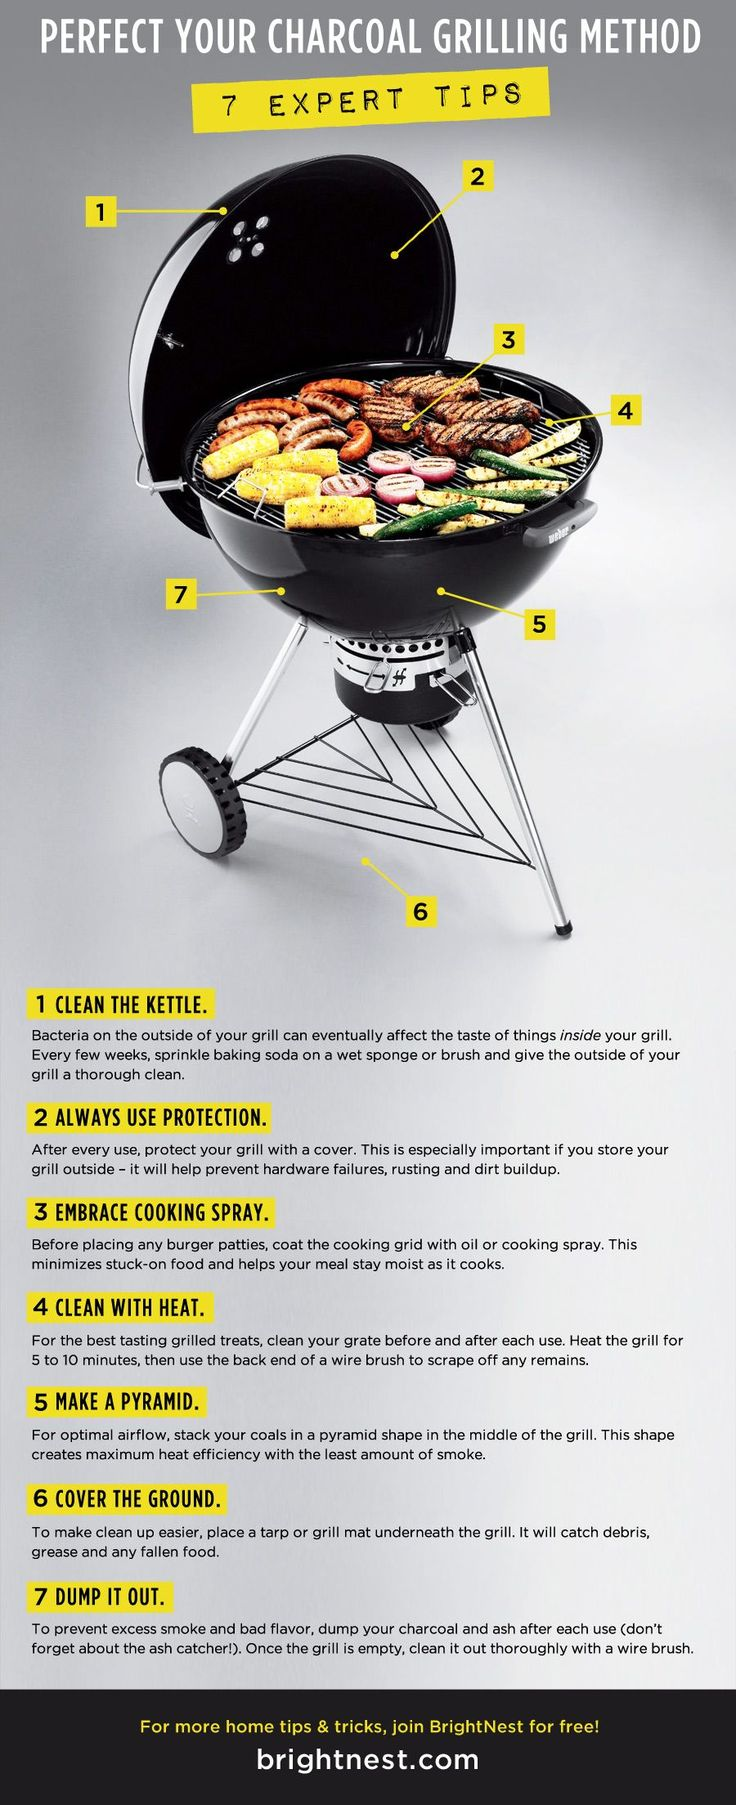 Perfect Your Charcoal Grilling Method: 7 Expert Tips #infographic